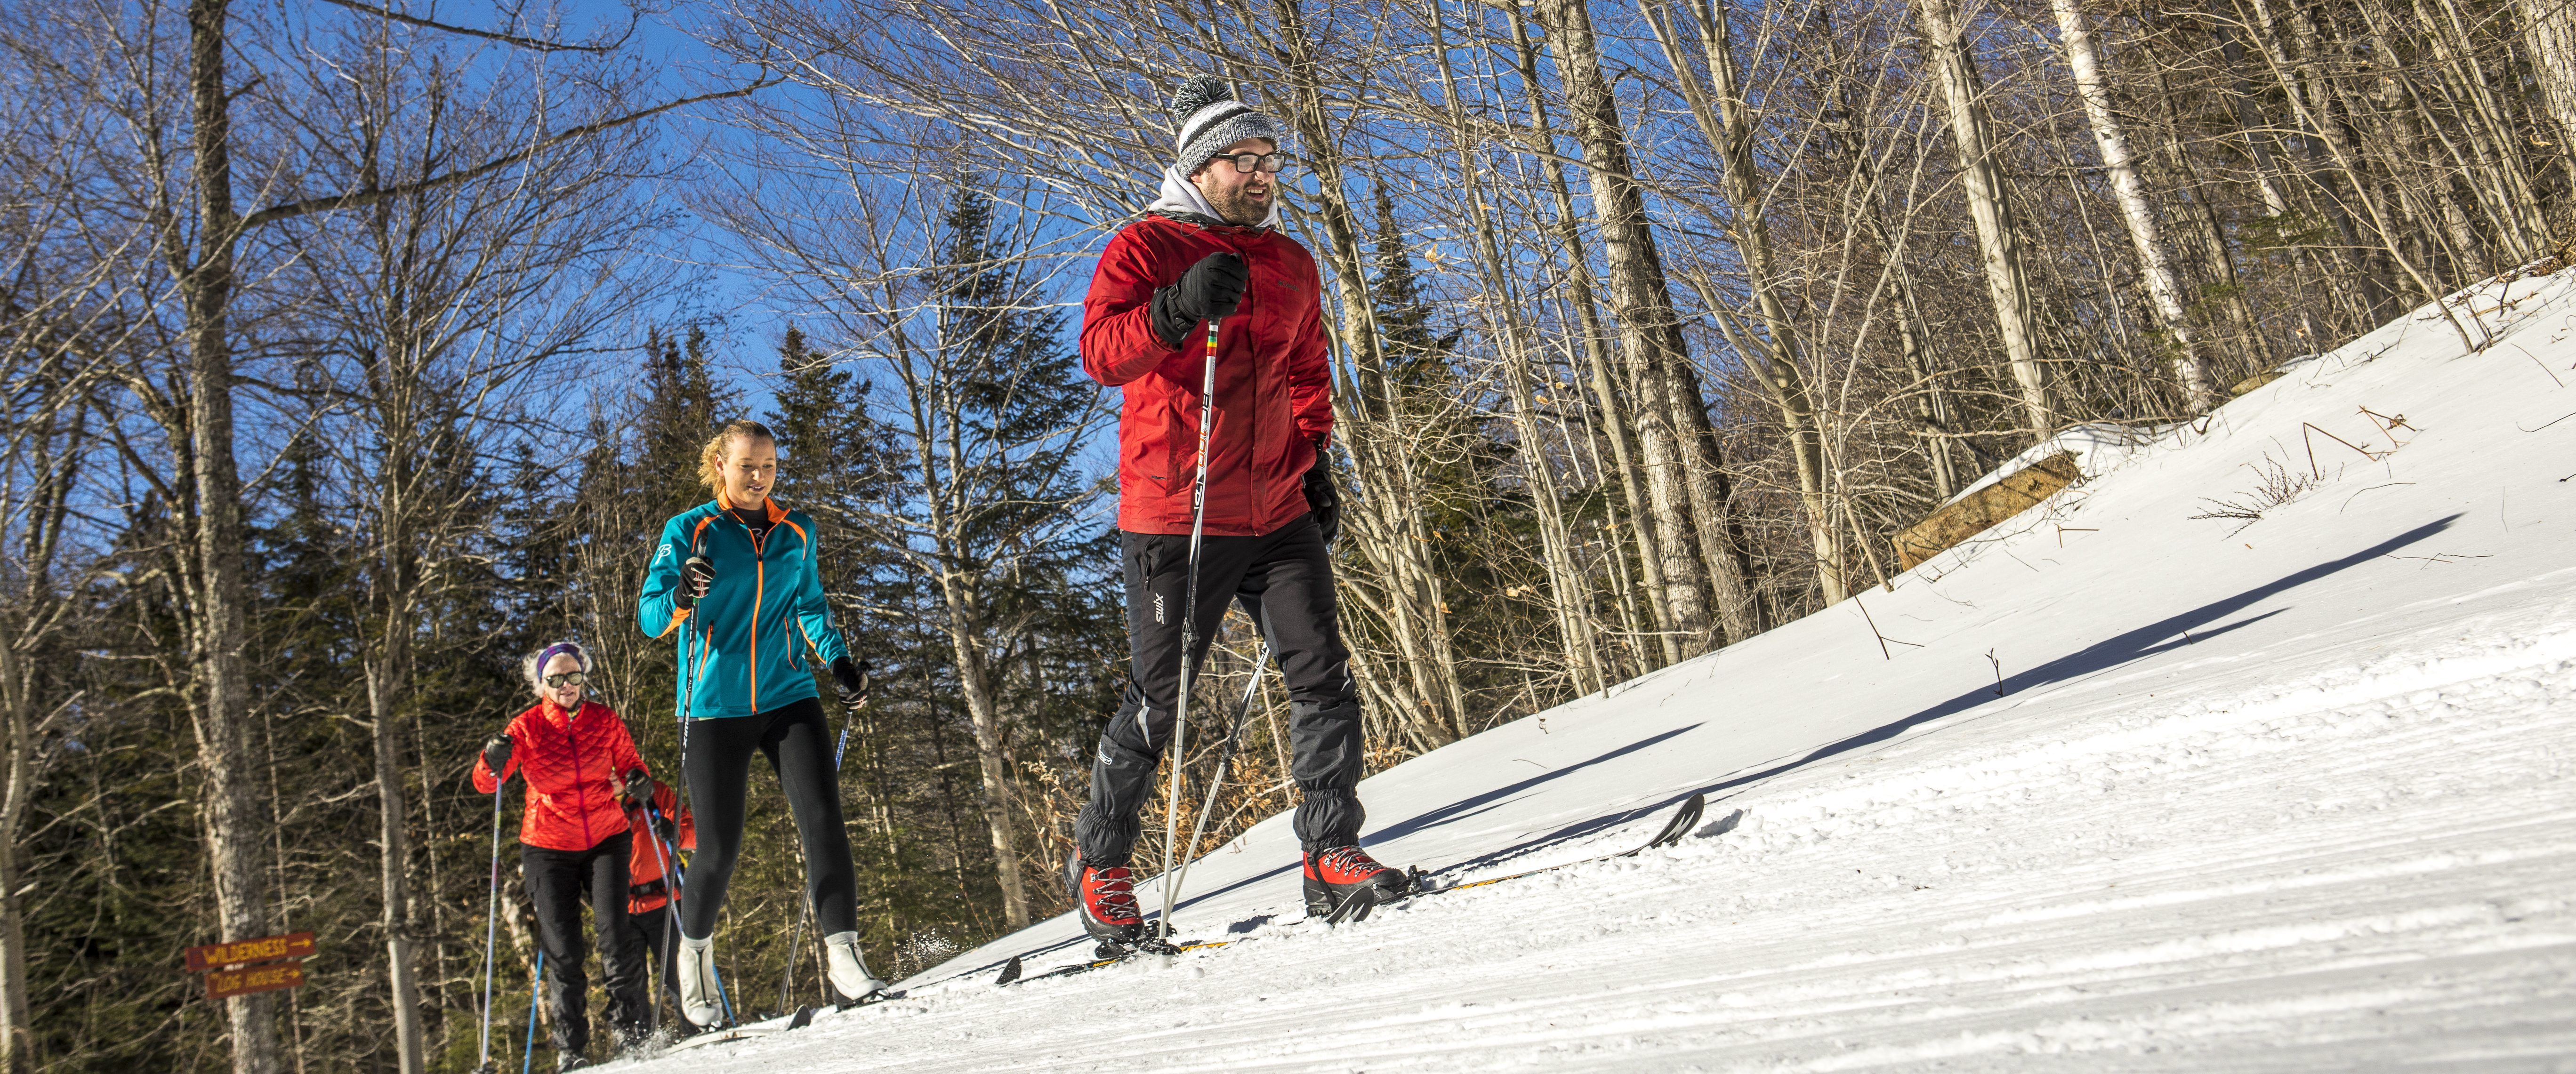 Winter Arrives Early To The Adirondacks It Is Not Unusual To Be Cross Country Skiing At Garnet Hill By Than Cross Country Skiing Winter Sports Mountain Resort